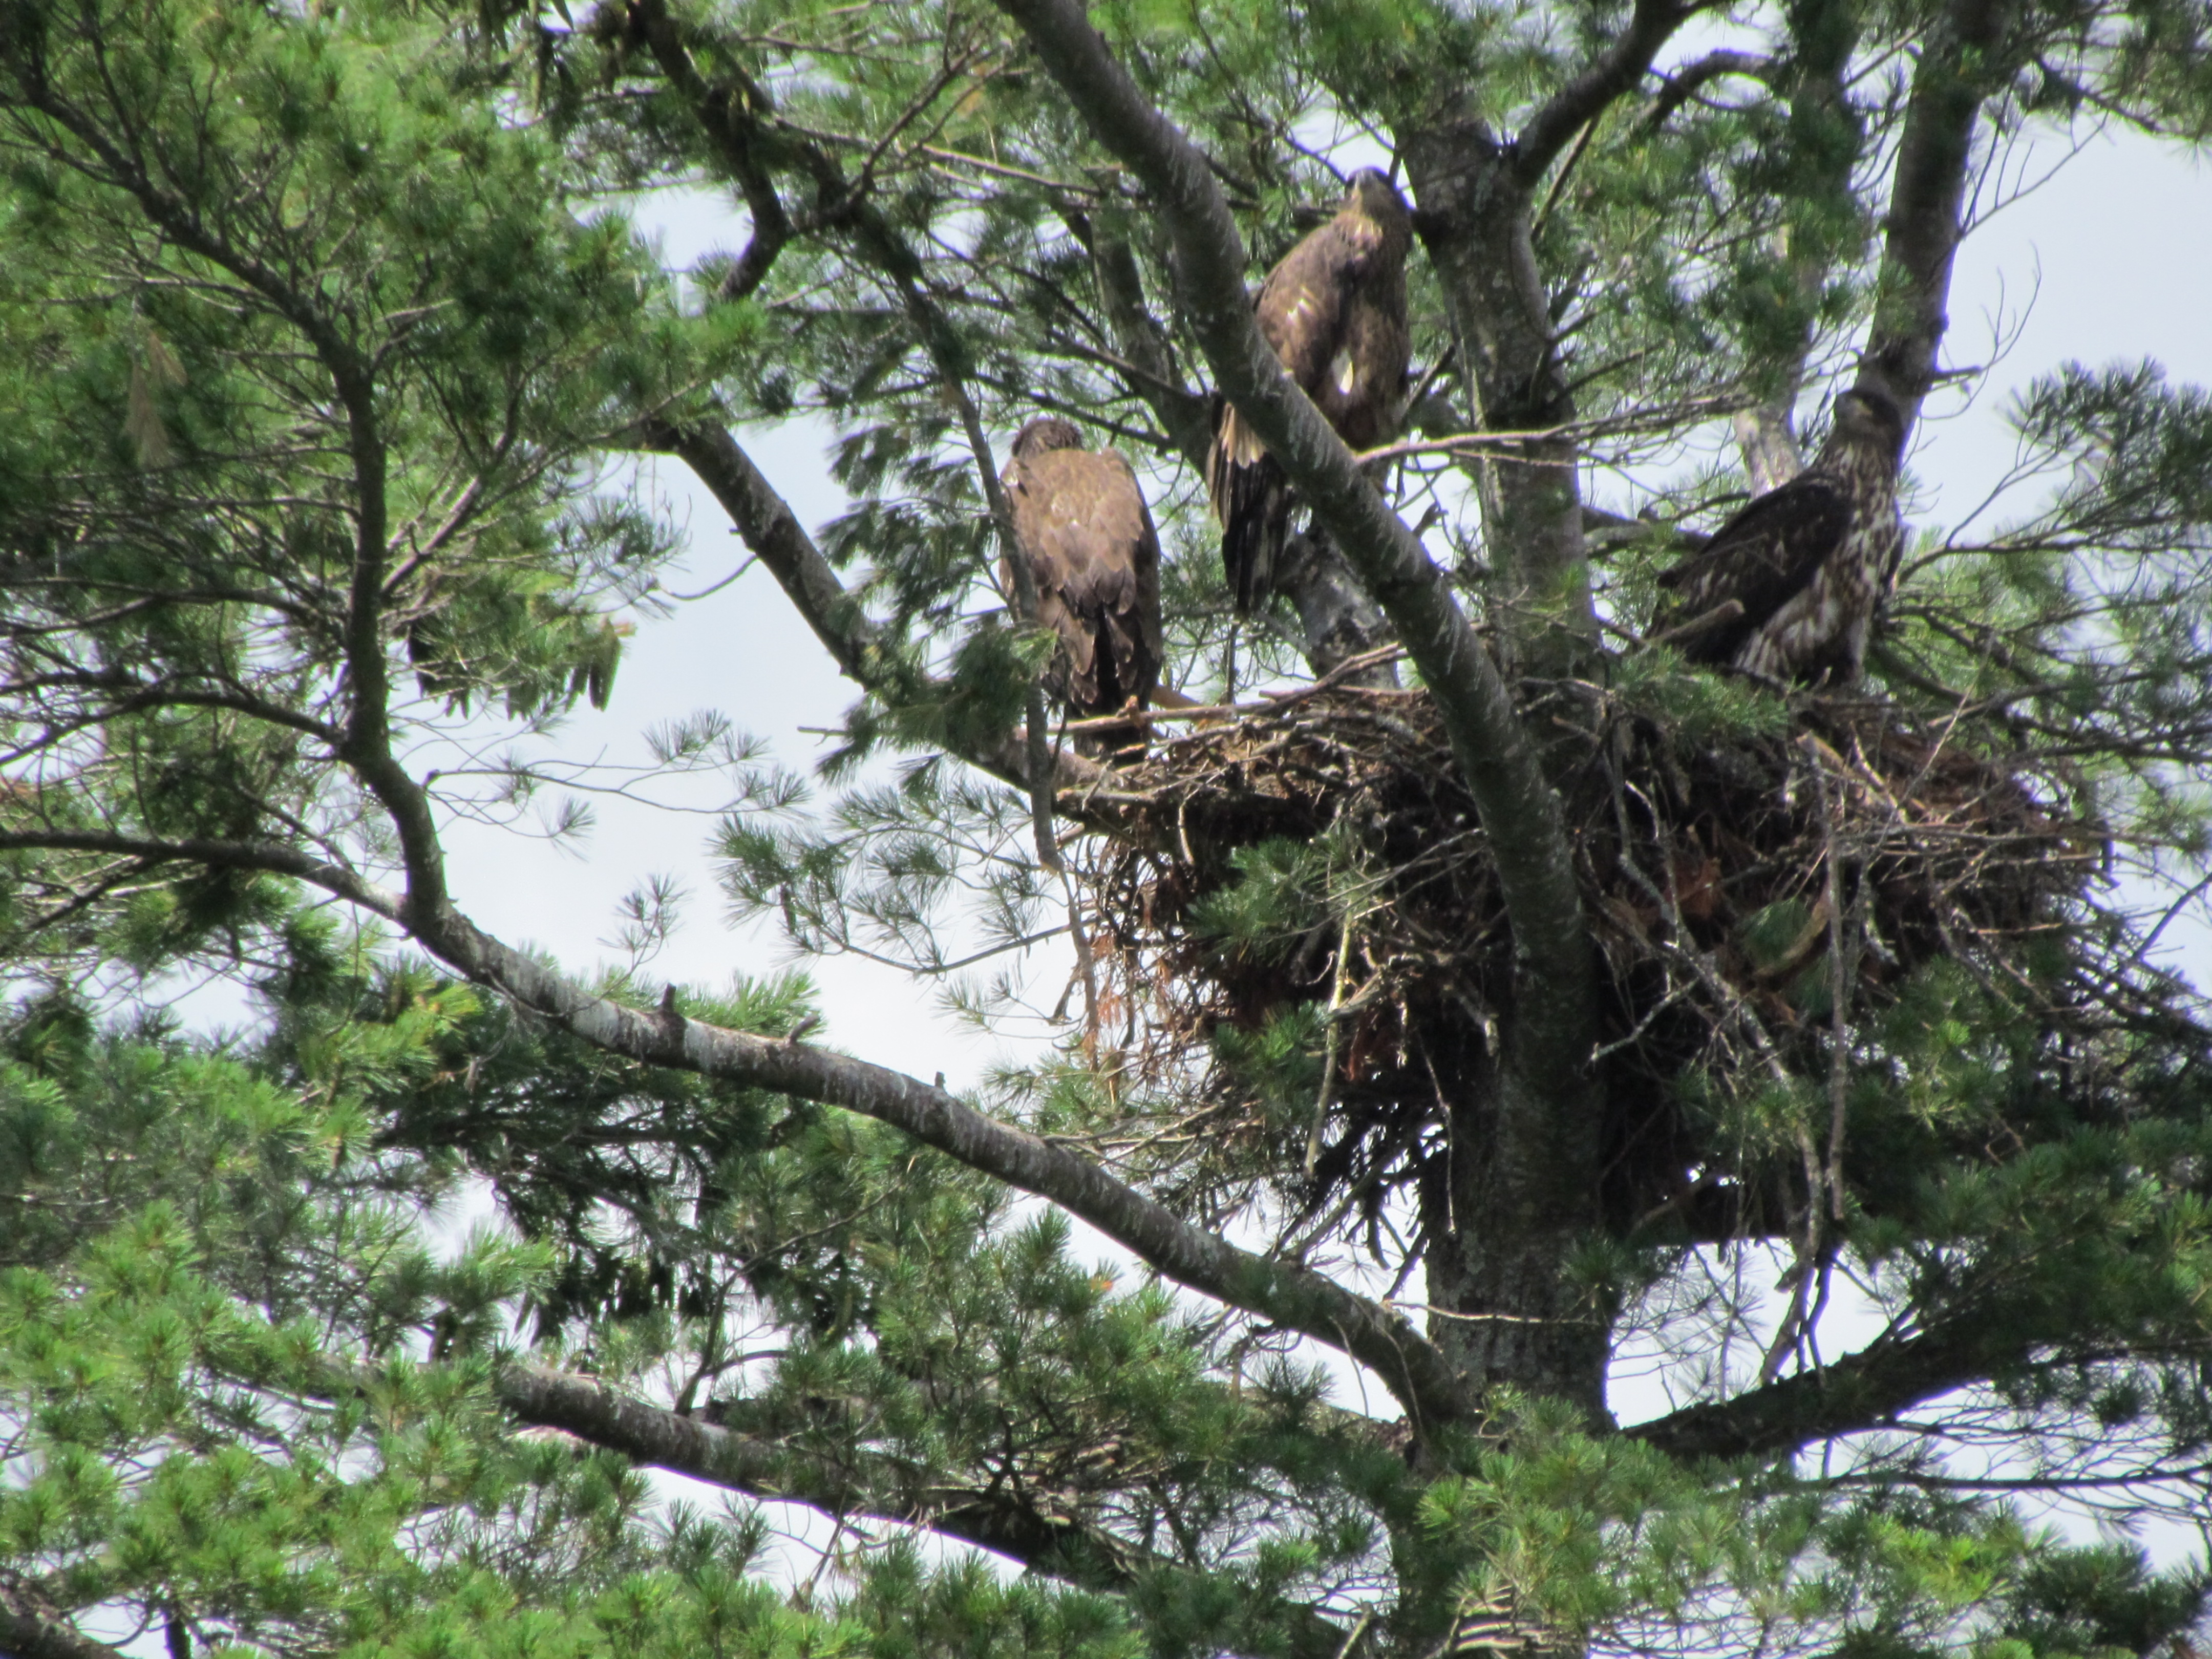 The eaglets